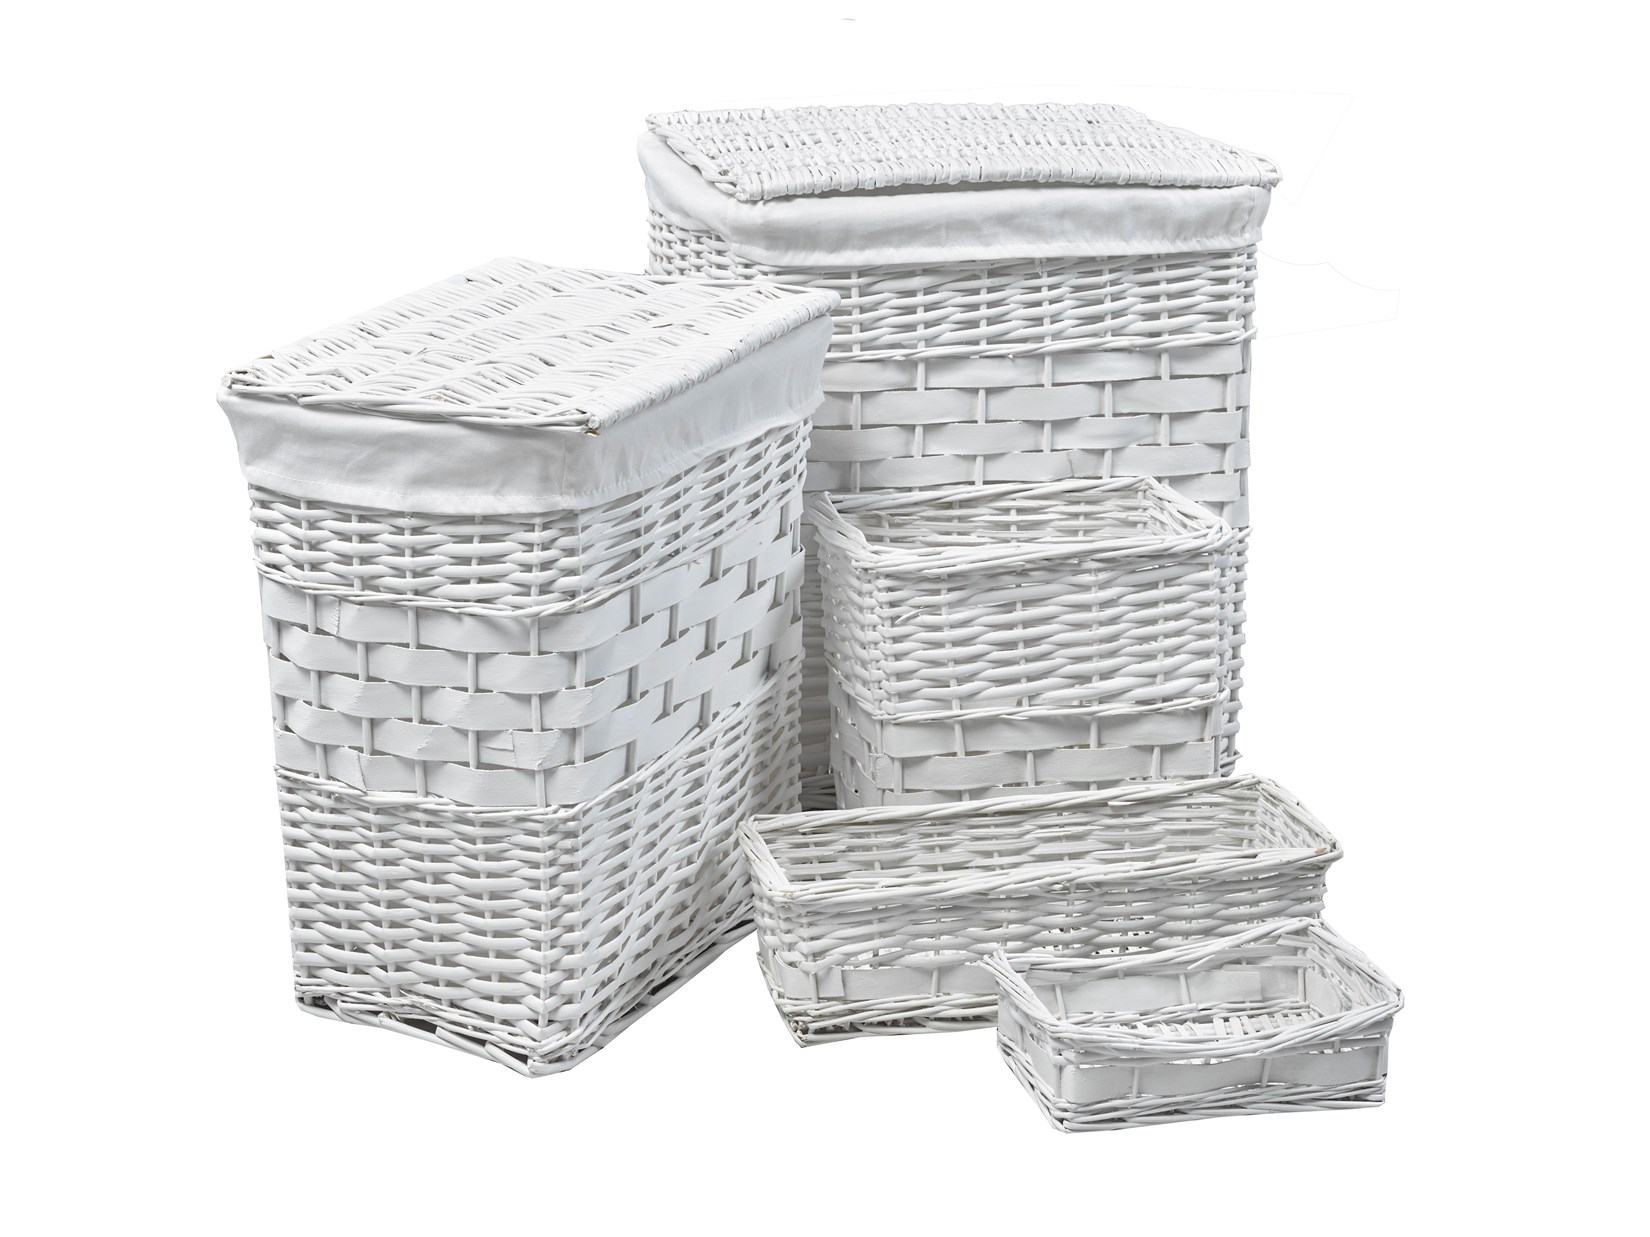 ViscoLogic Willow Wicker Basket Set of 5 Pieces by ViscoLogic